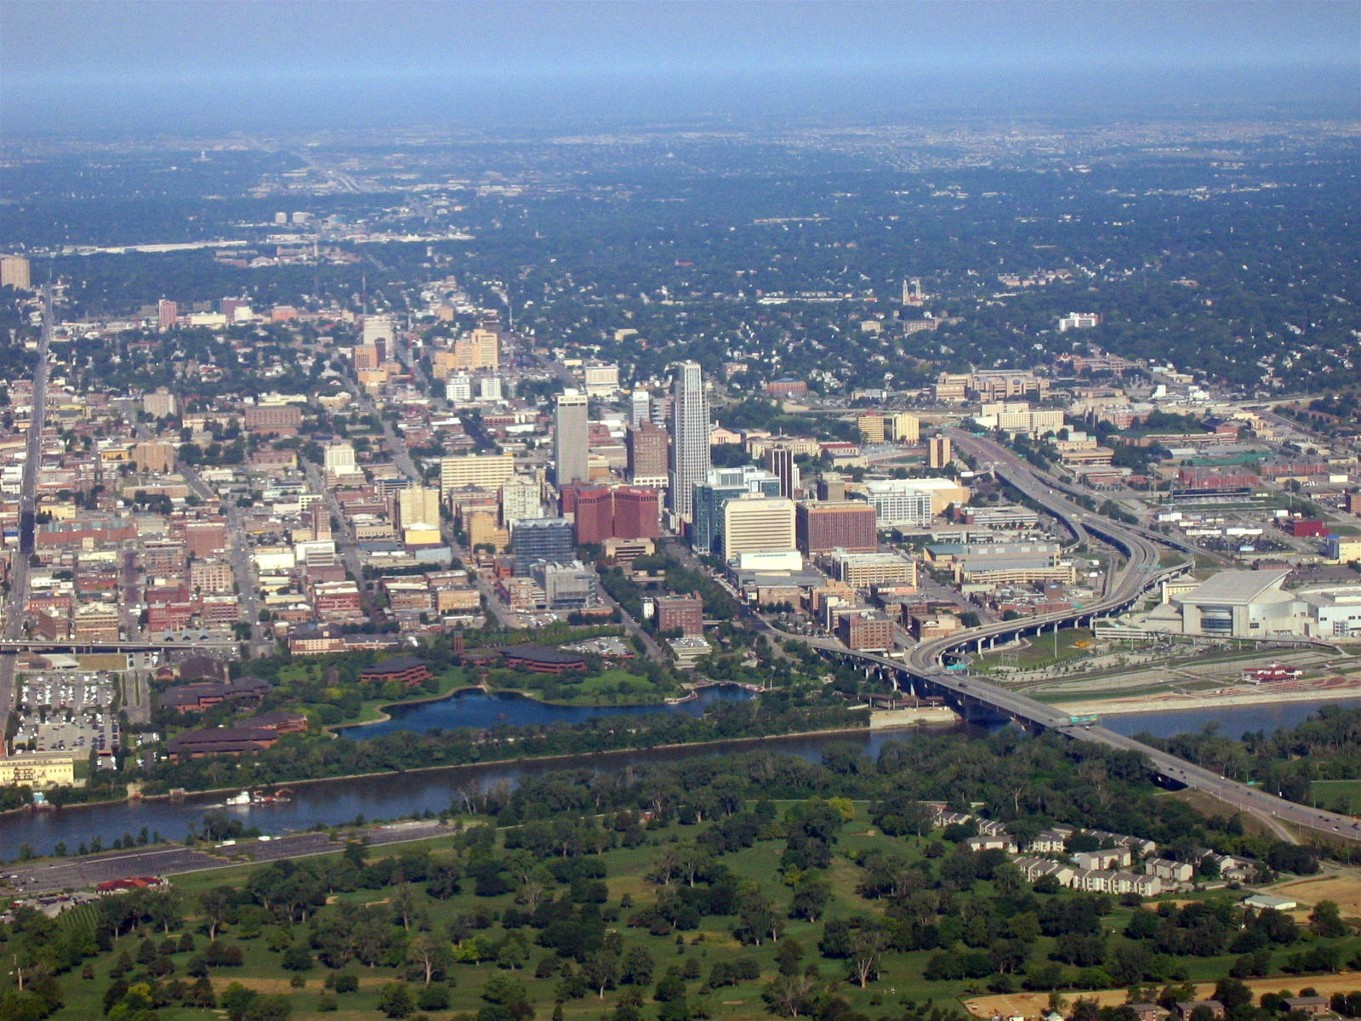 Arial view of Omaha, NE